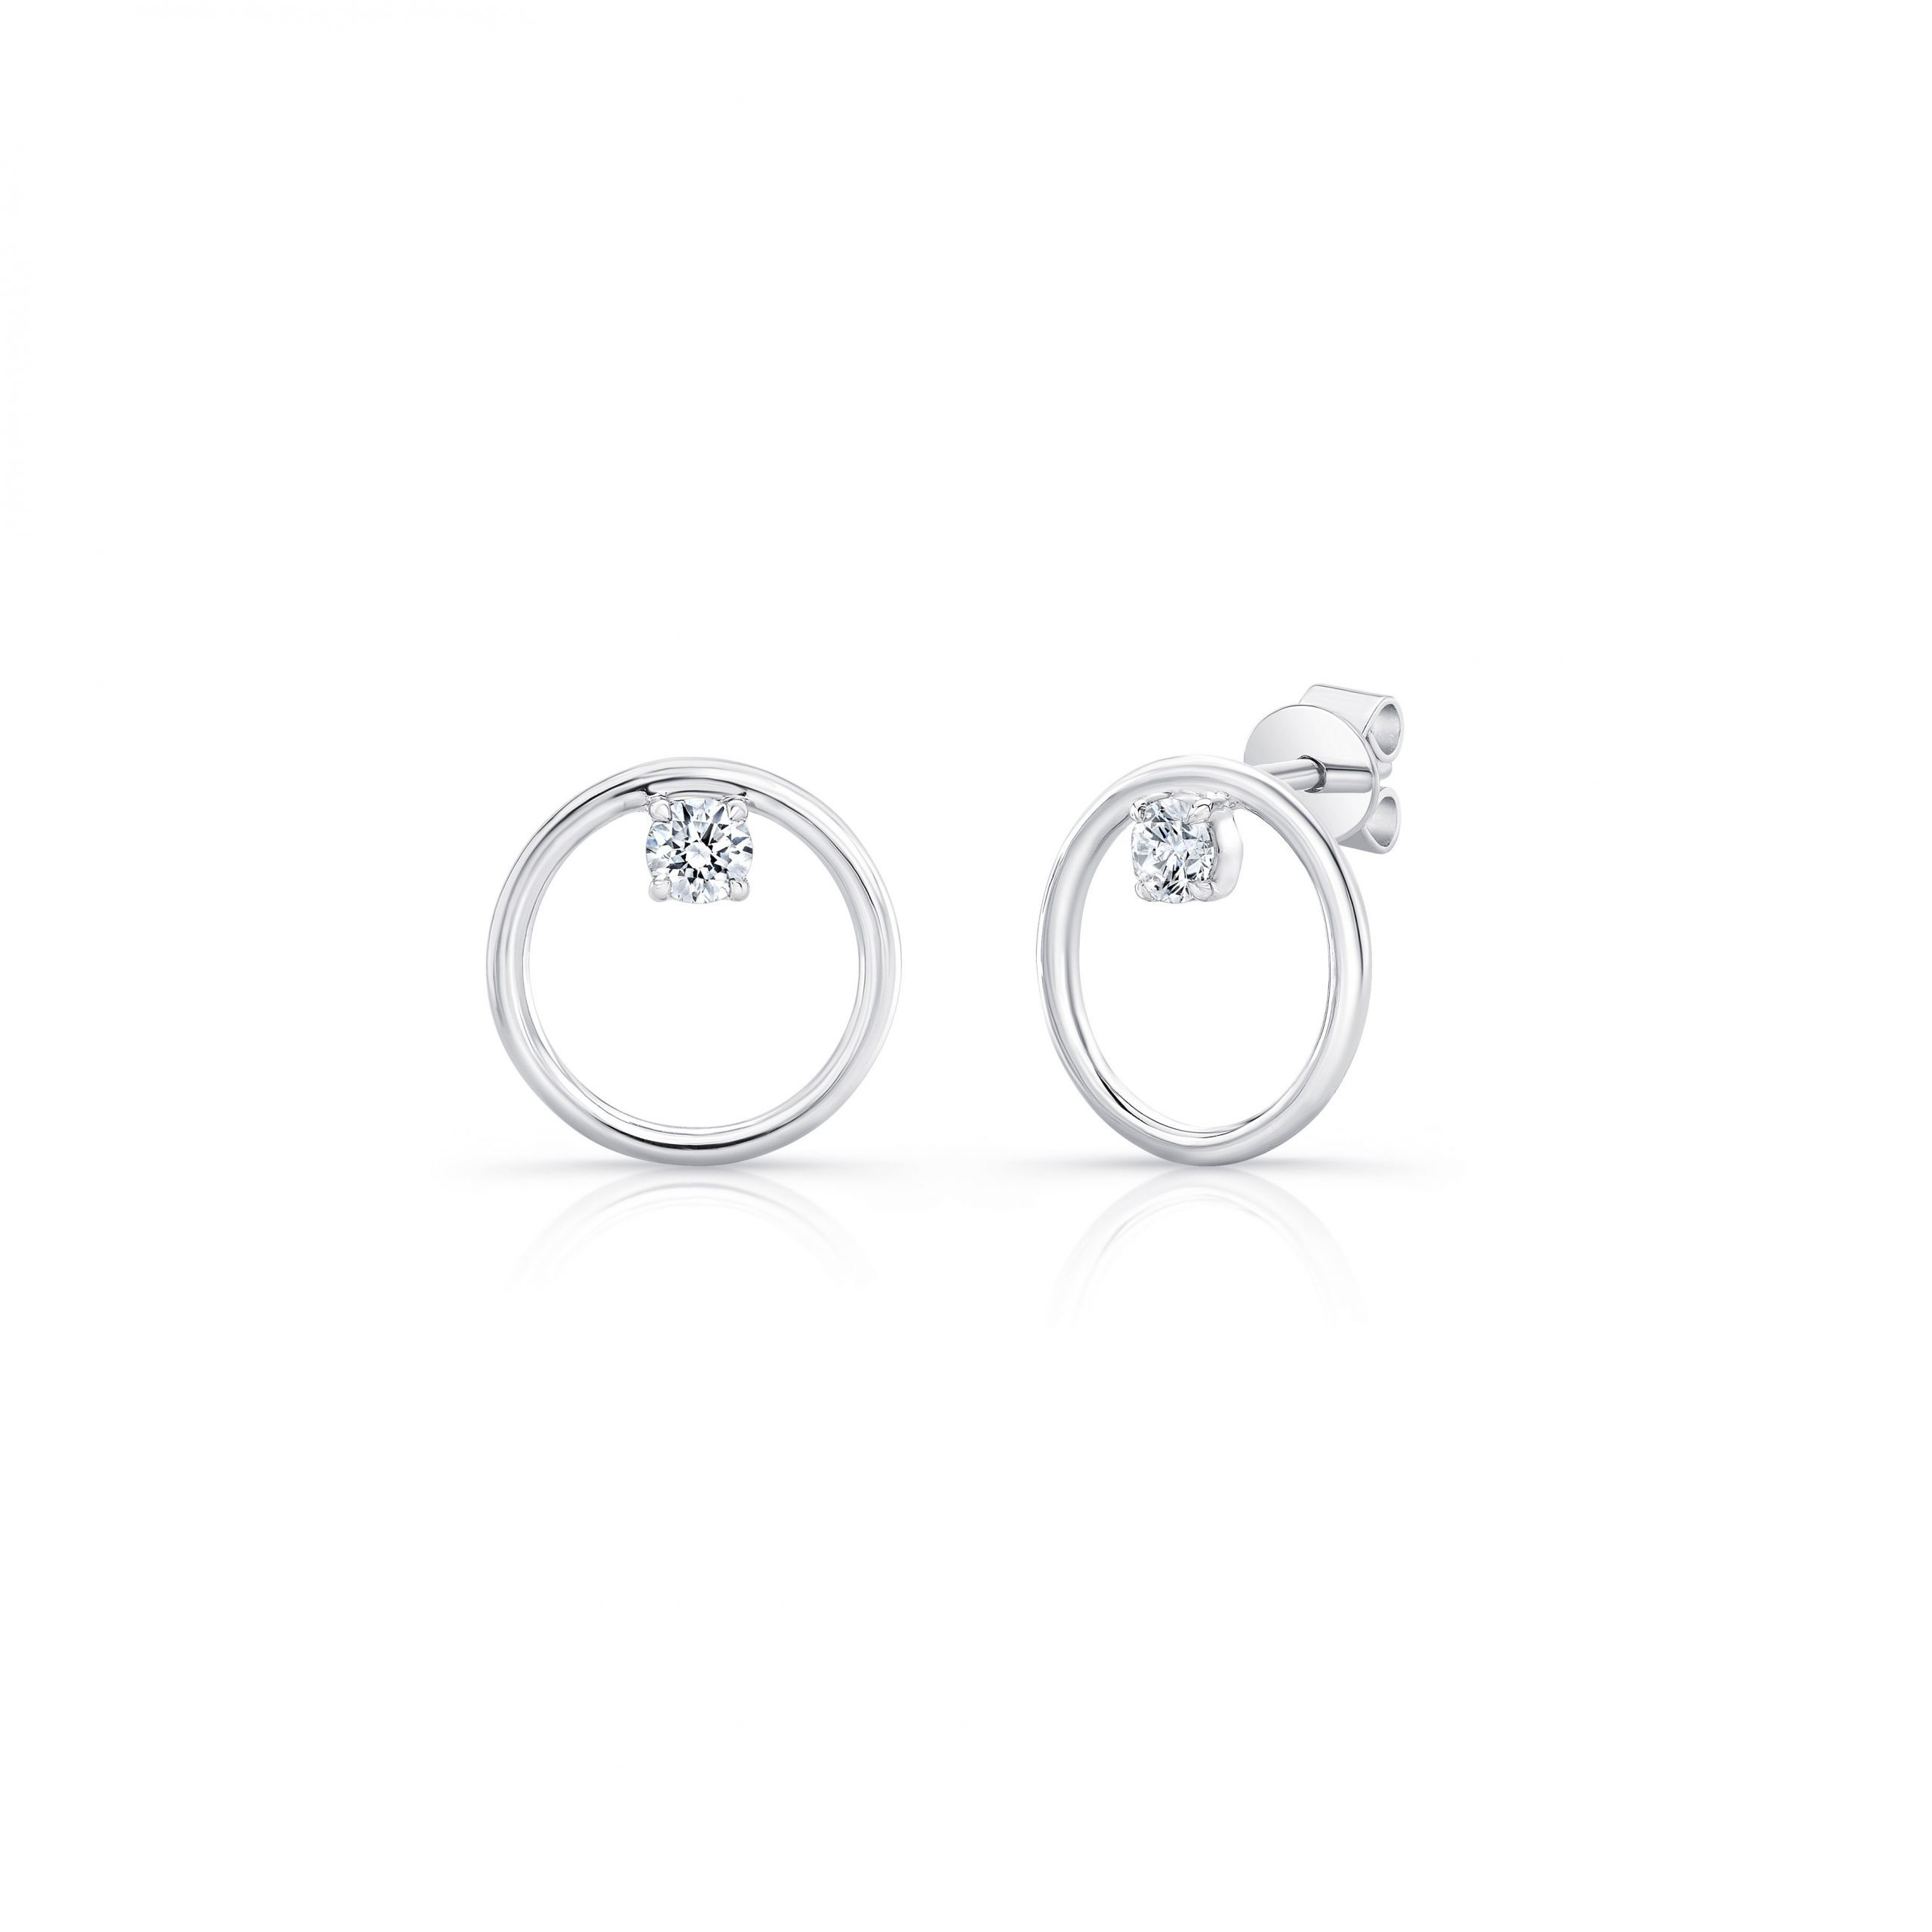 Colette Front Facing Diamond Hoop Earrings in 18k White Gold Side View by Oui by Jean Dousset